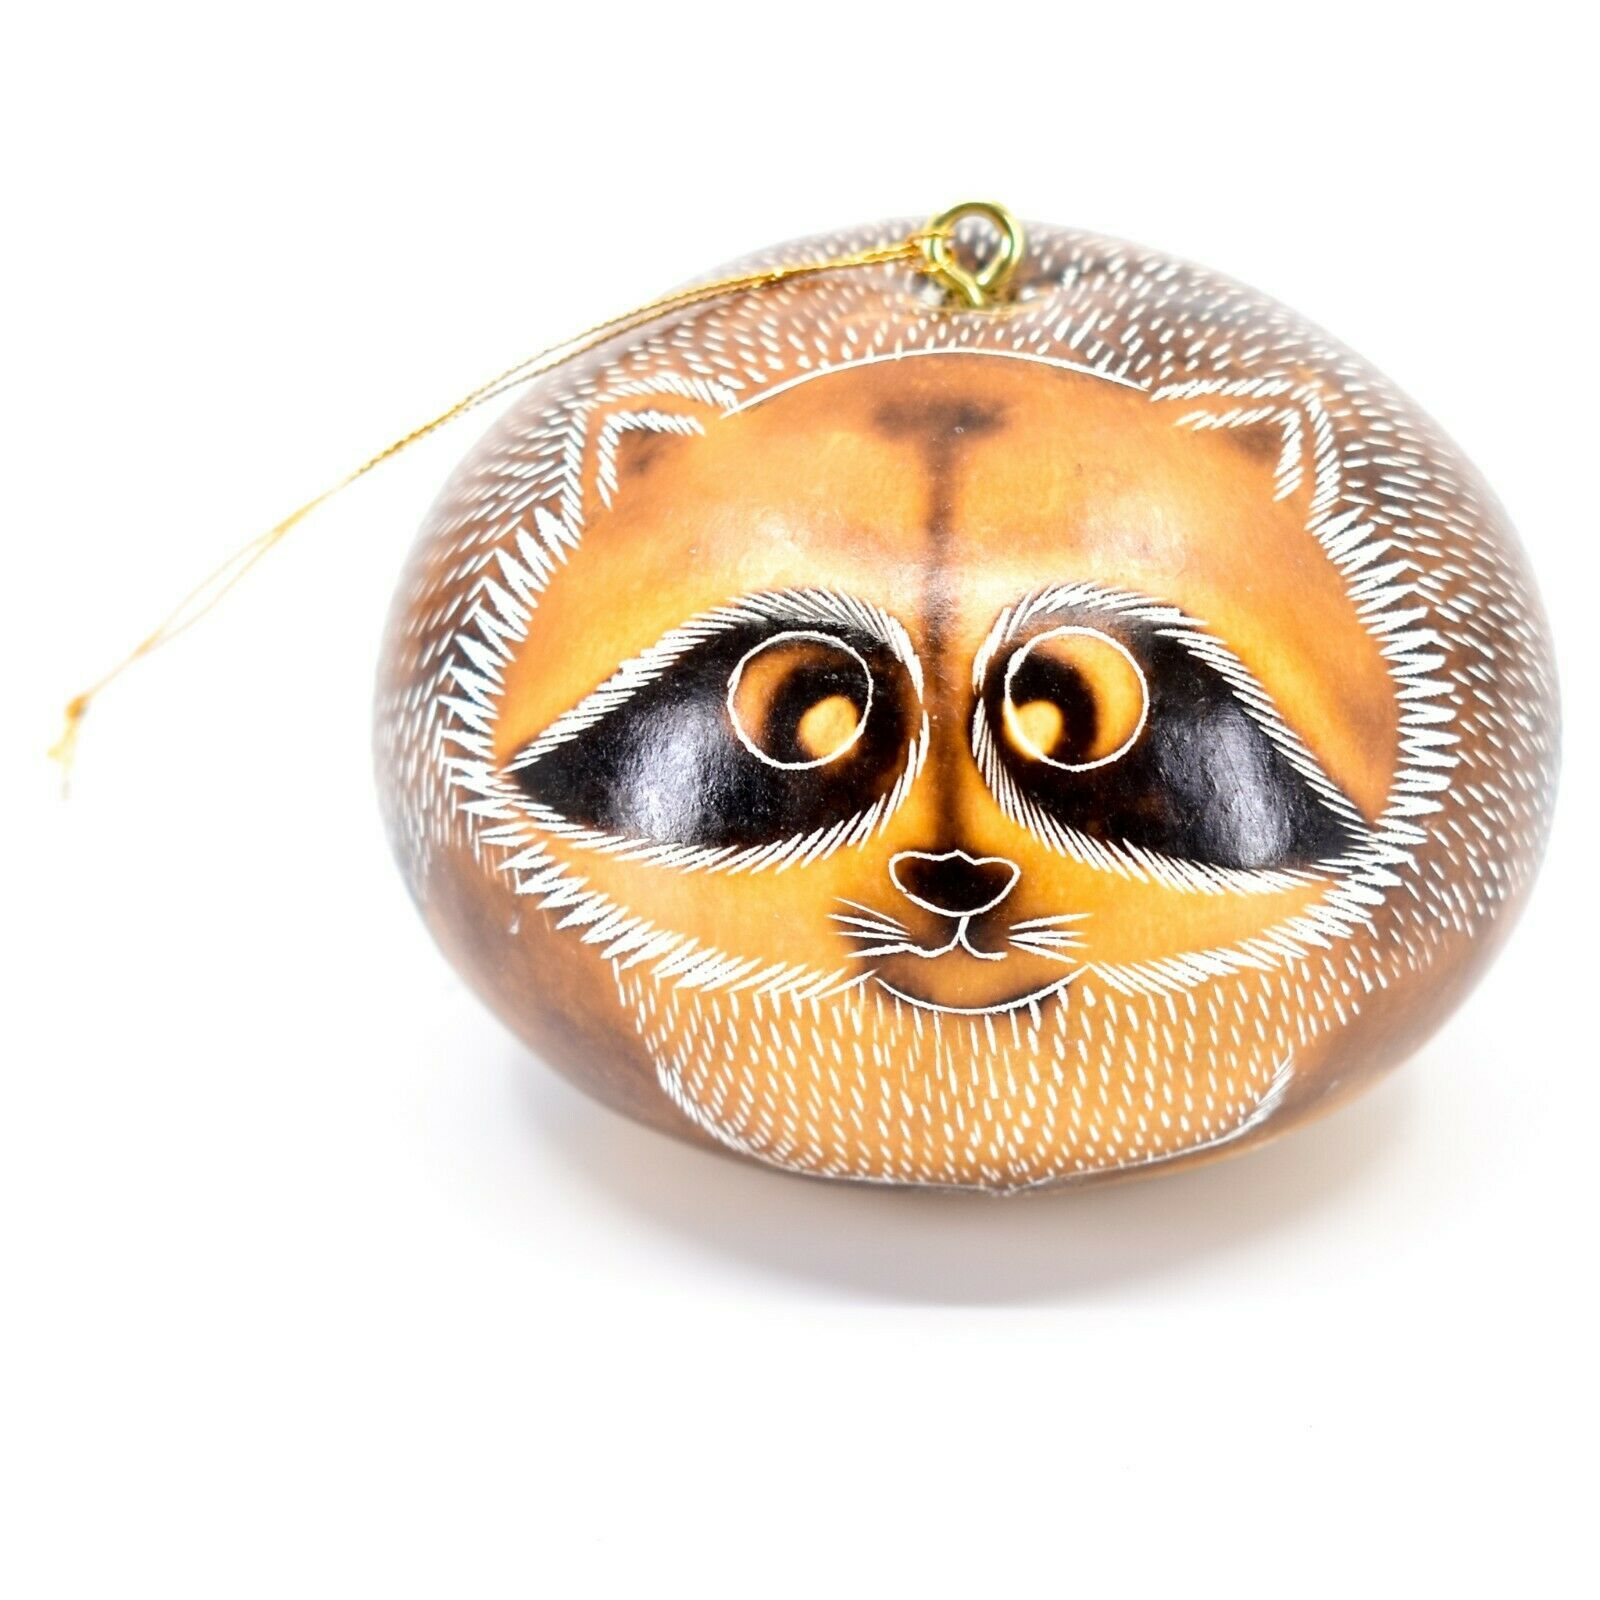 Handcrafted Carved Gourd Art Raccoon Animal Ornament Made in Peru